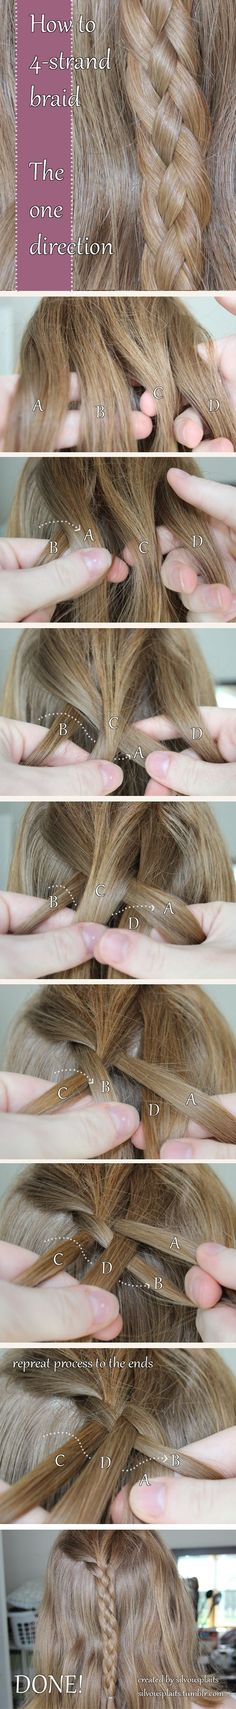 How to do a 4-strand braid